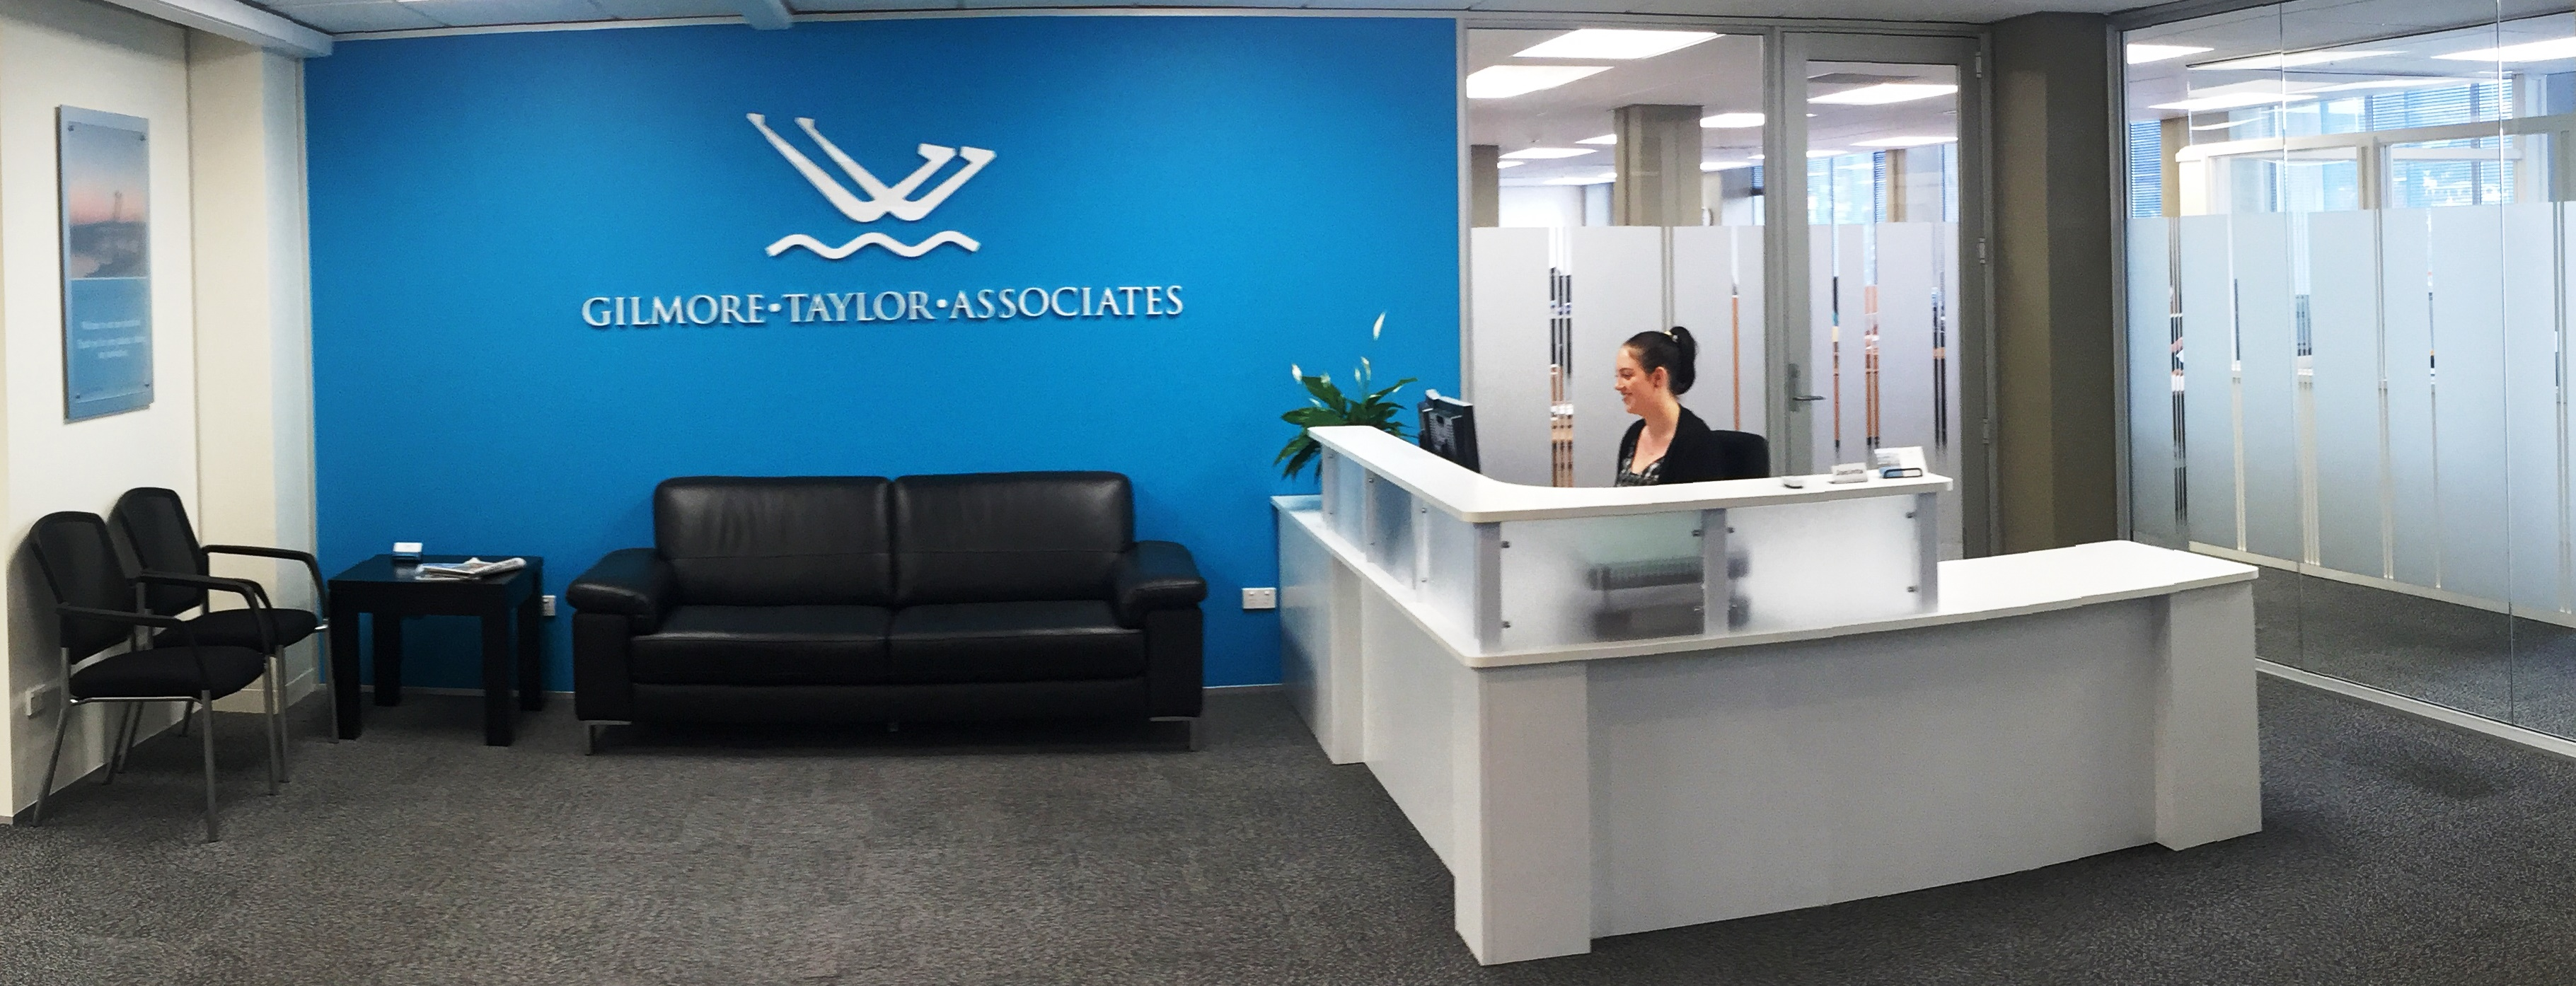 Why work for Gilmore Taylor Associates?